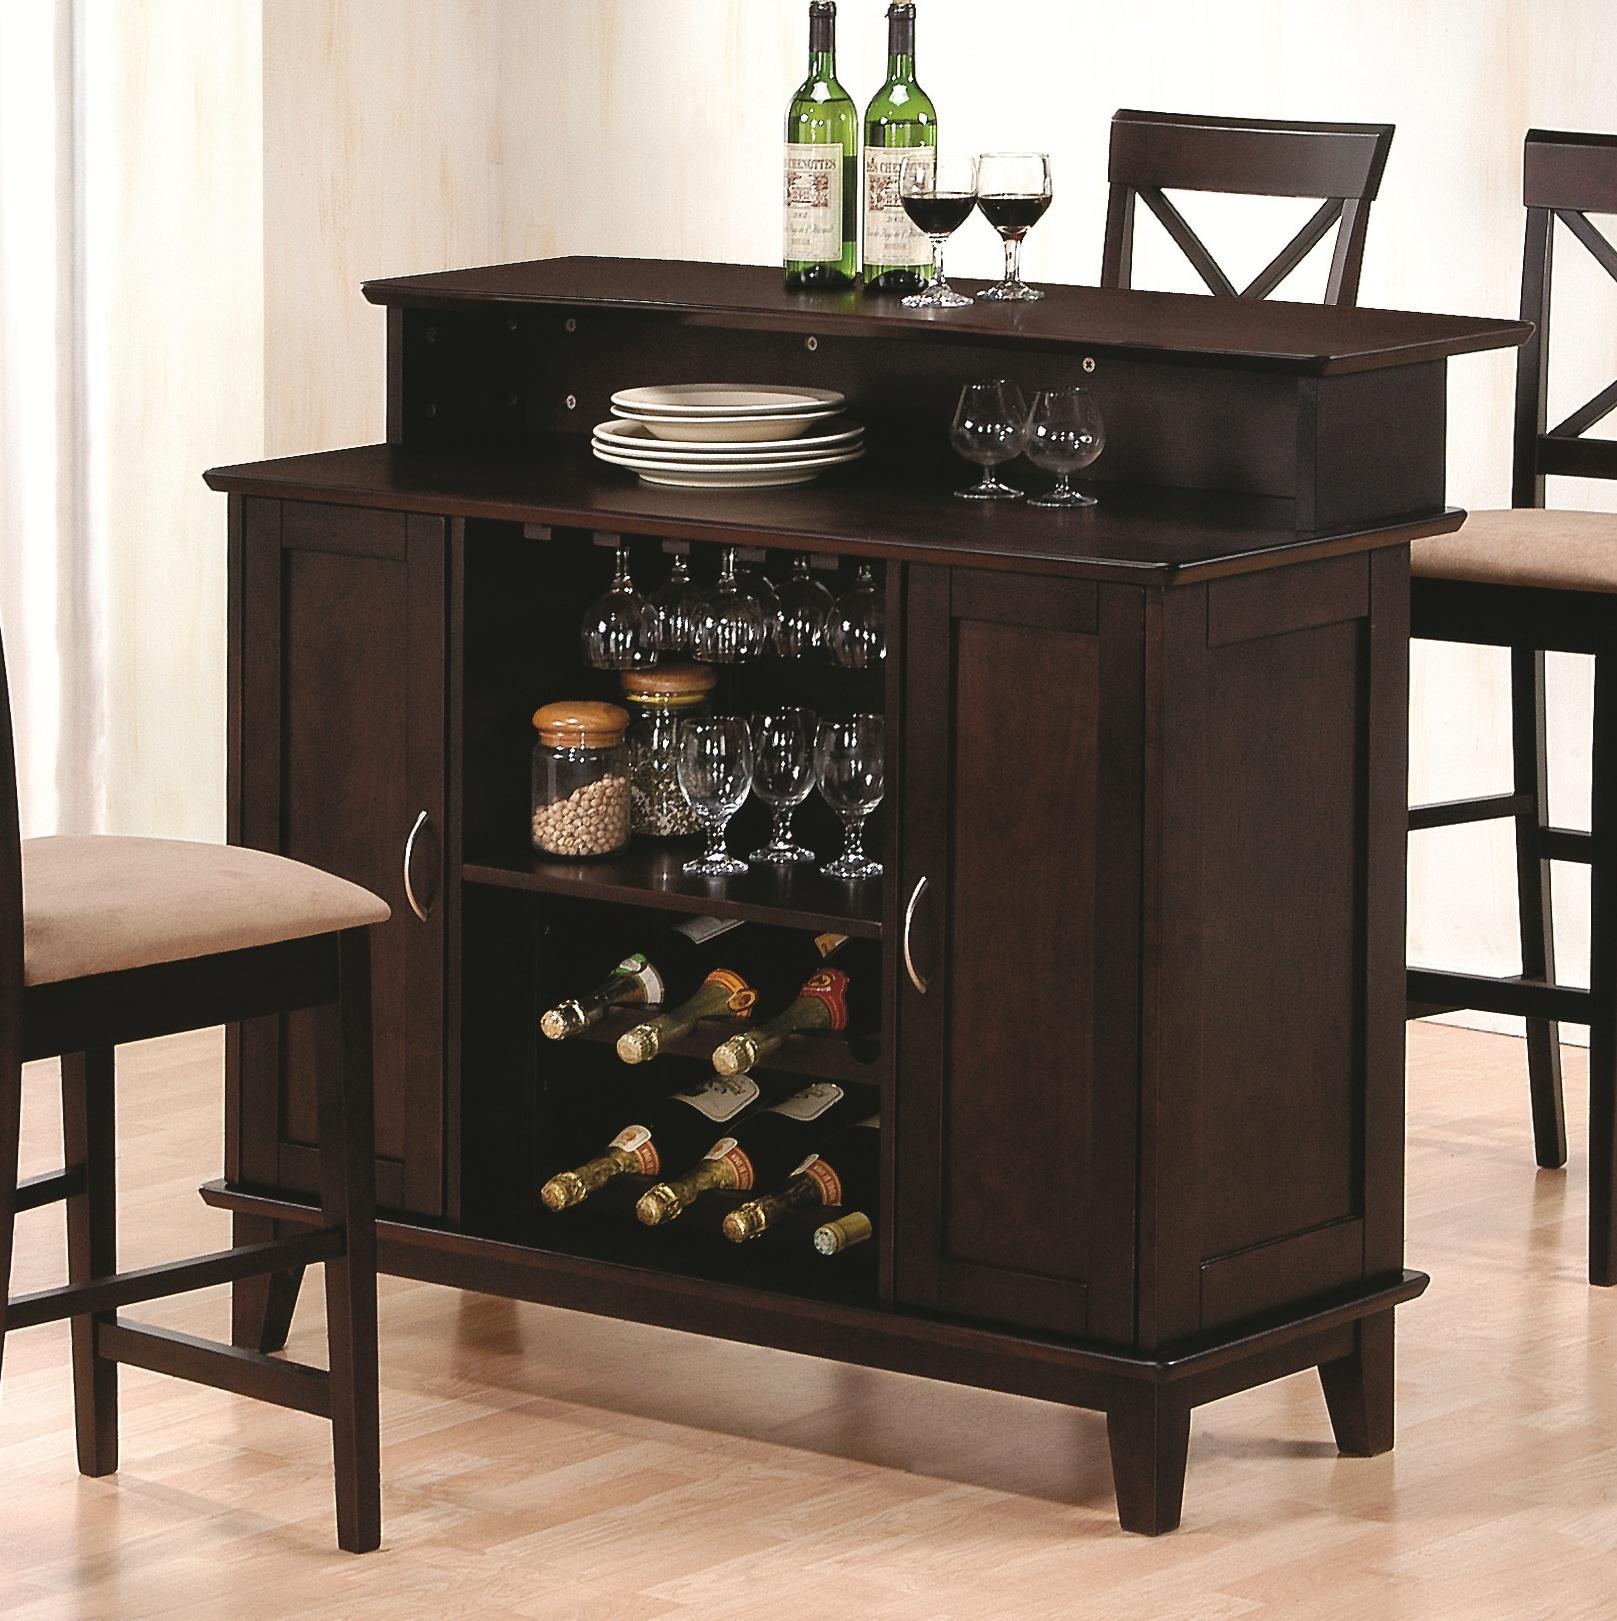 Mix & Match Bar with Wine and Stemware Storage